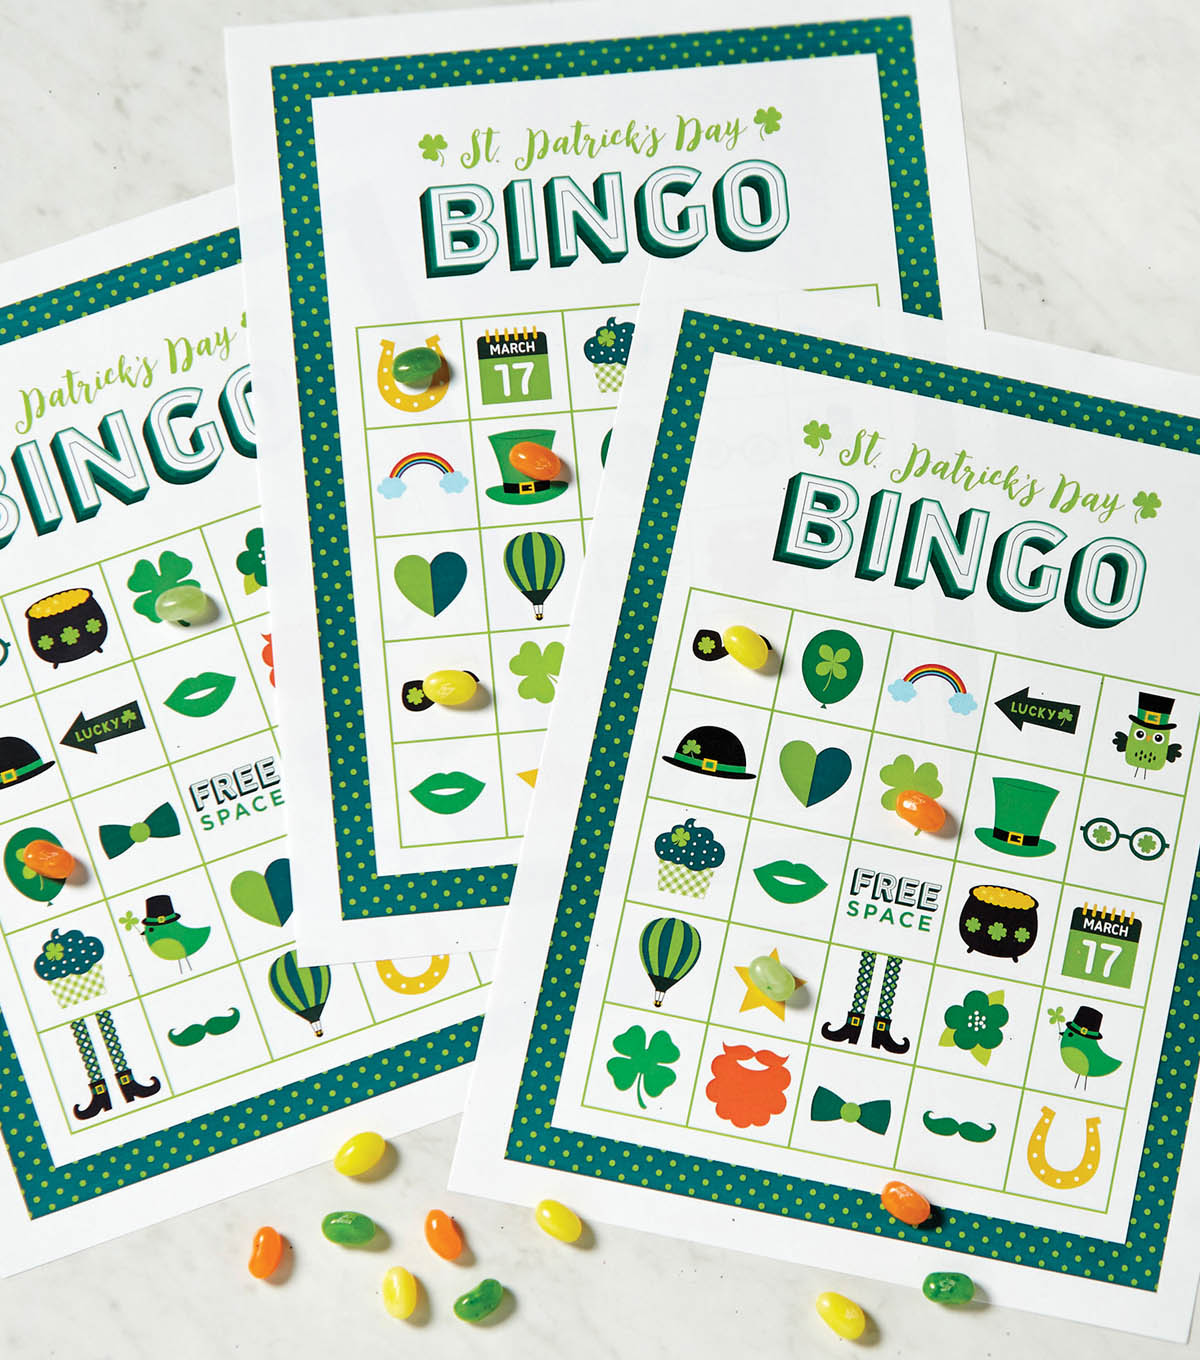 photograph relating to St Patrick's Day Bingo Printable named St. Patricks Working day Viewpoint Fortuitous Bingo Board Printable JOANN